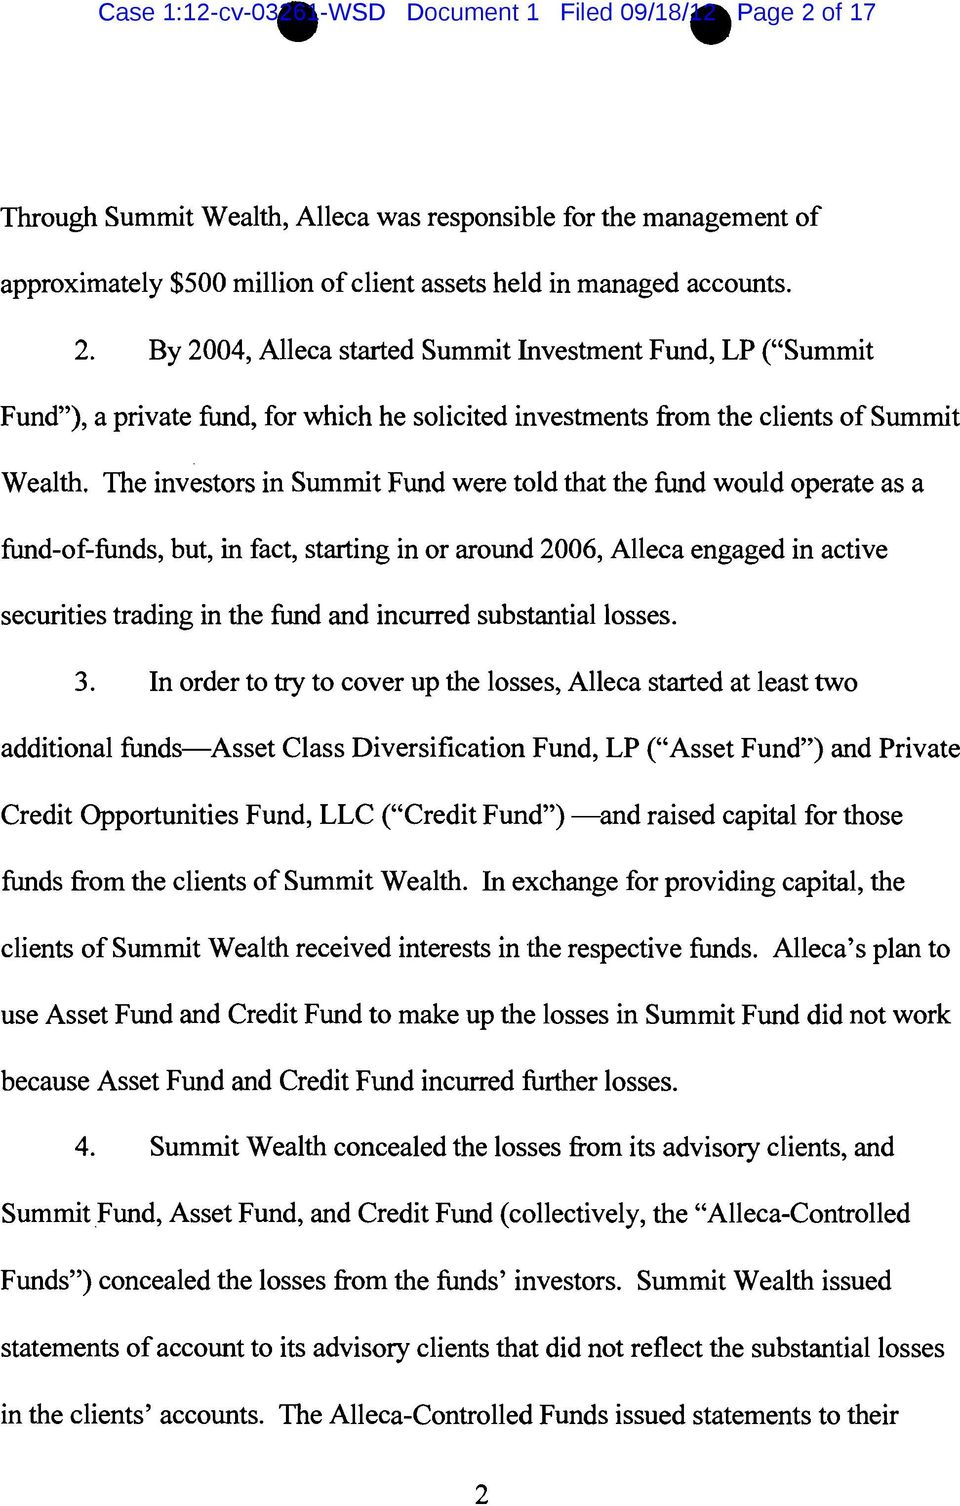 The investors in Summit Fund were told that the fund would operate as a fund-of-funds, but, in fact, starting in or around 2006, Alleca engaged in active securities trading in the fund and incurred